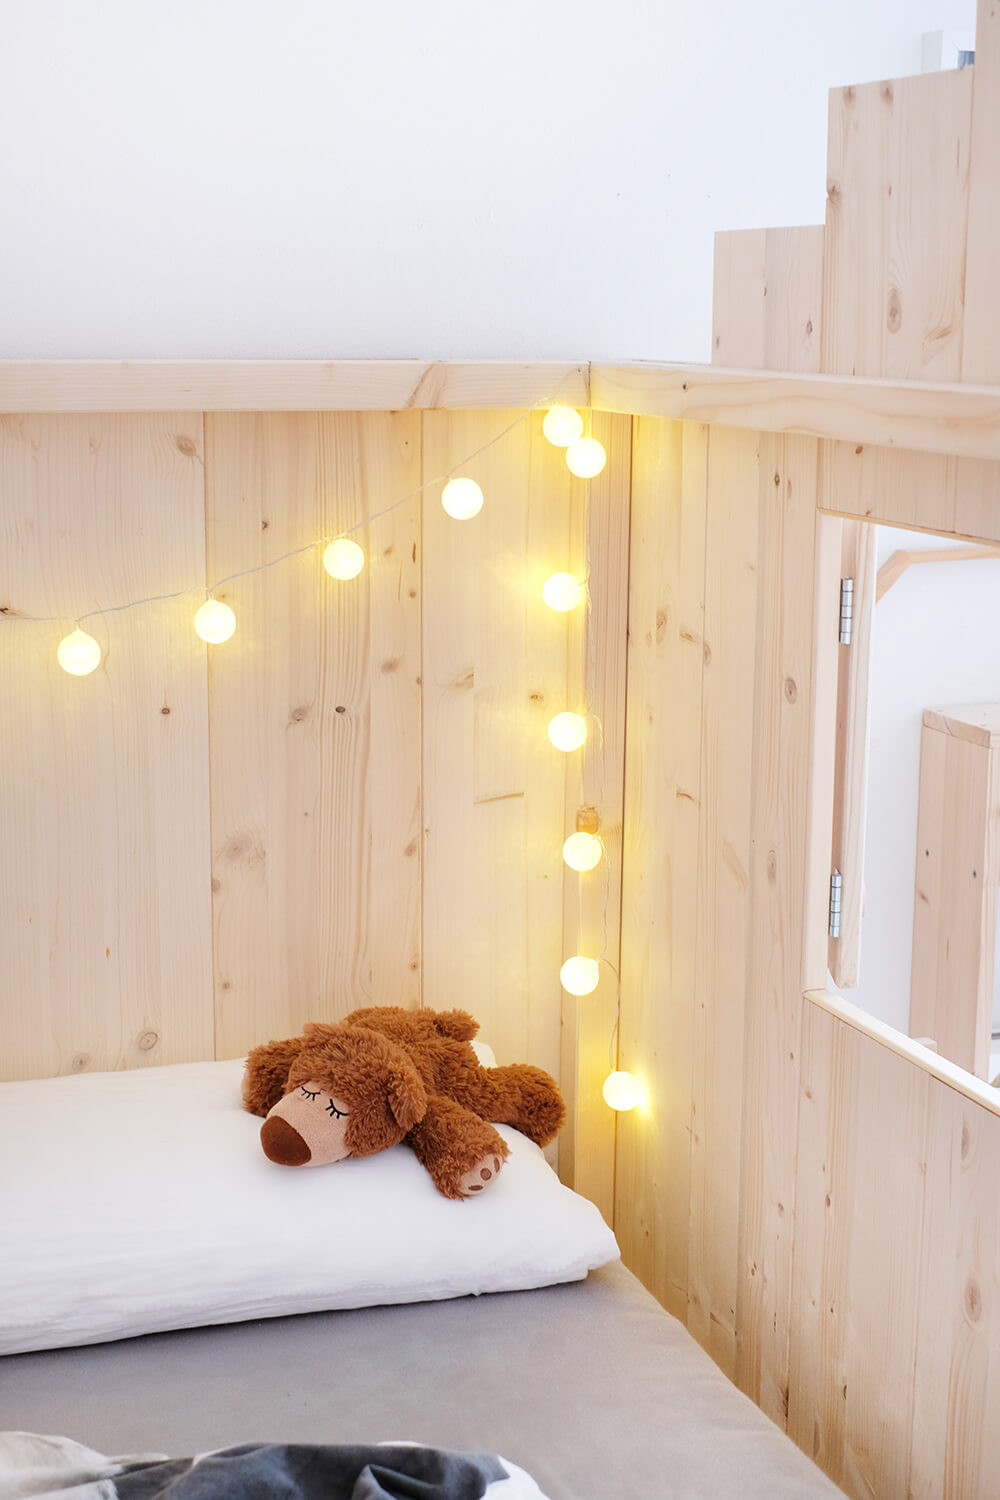 Lichterkette Im Schlafzimmer Diy-bett-kinderzimmer-ikea-ikeahack-nordli-kinderbett-lichterkette-gingered-things - Gingered Things